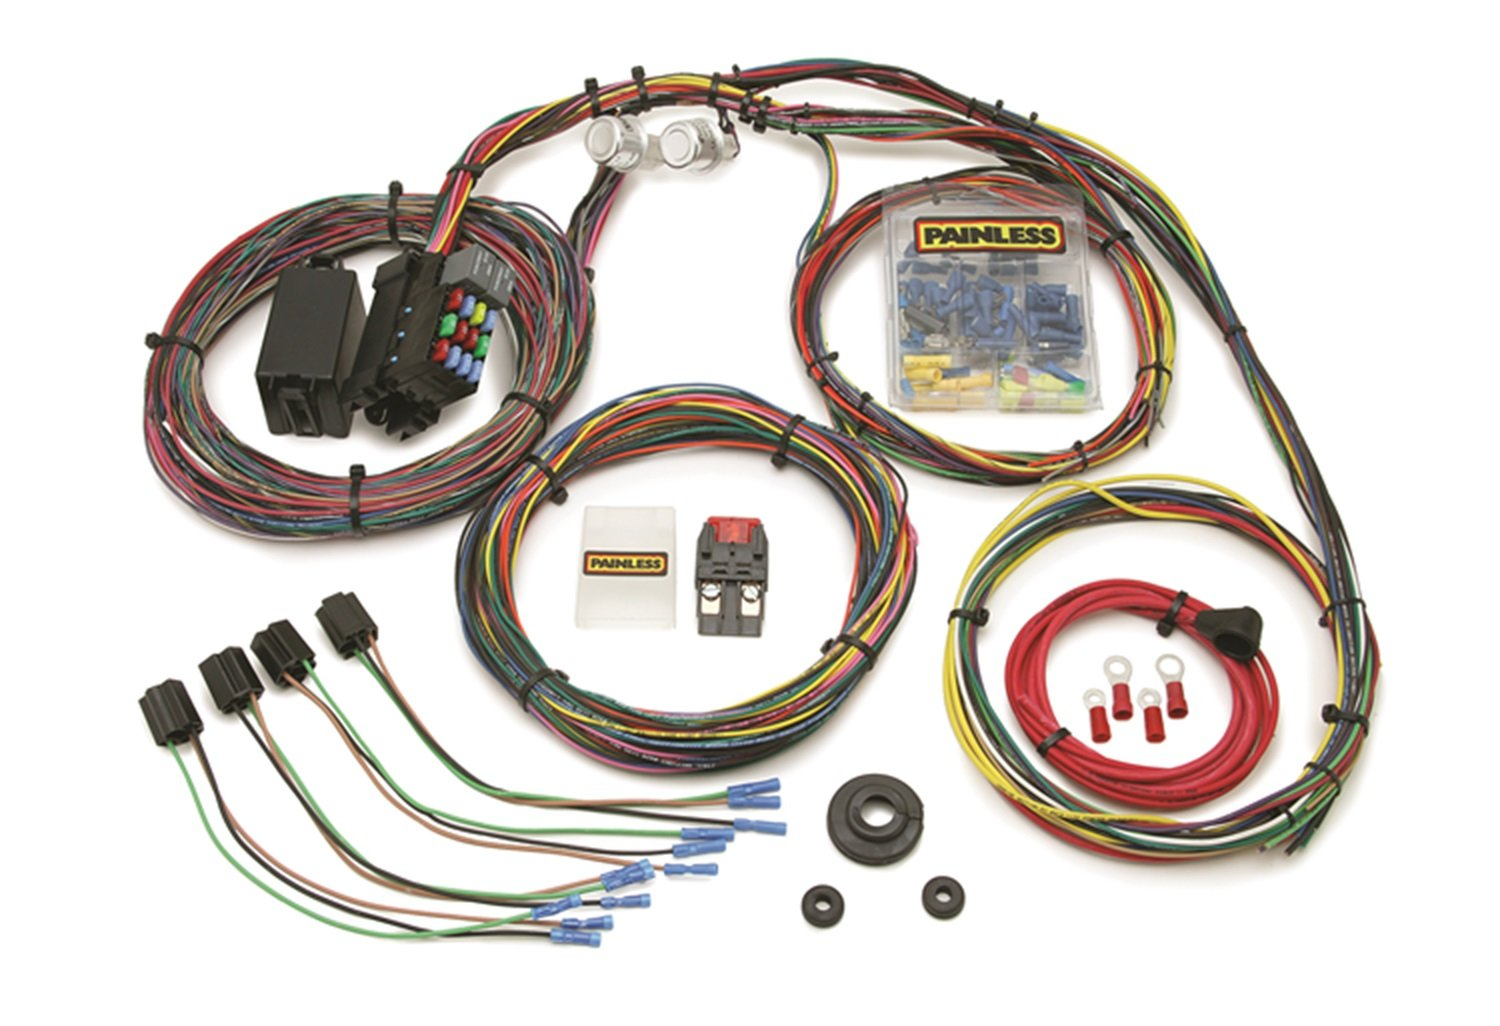 amazon com painless 10127 automotive rh amazon com Painless Wiring Installation Manual painless universal 18-circuit wiring harness